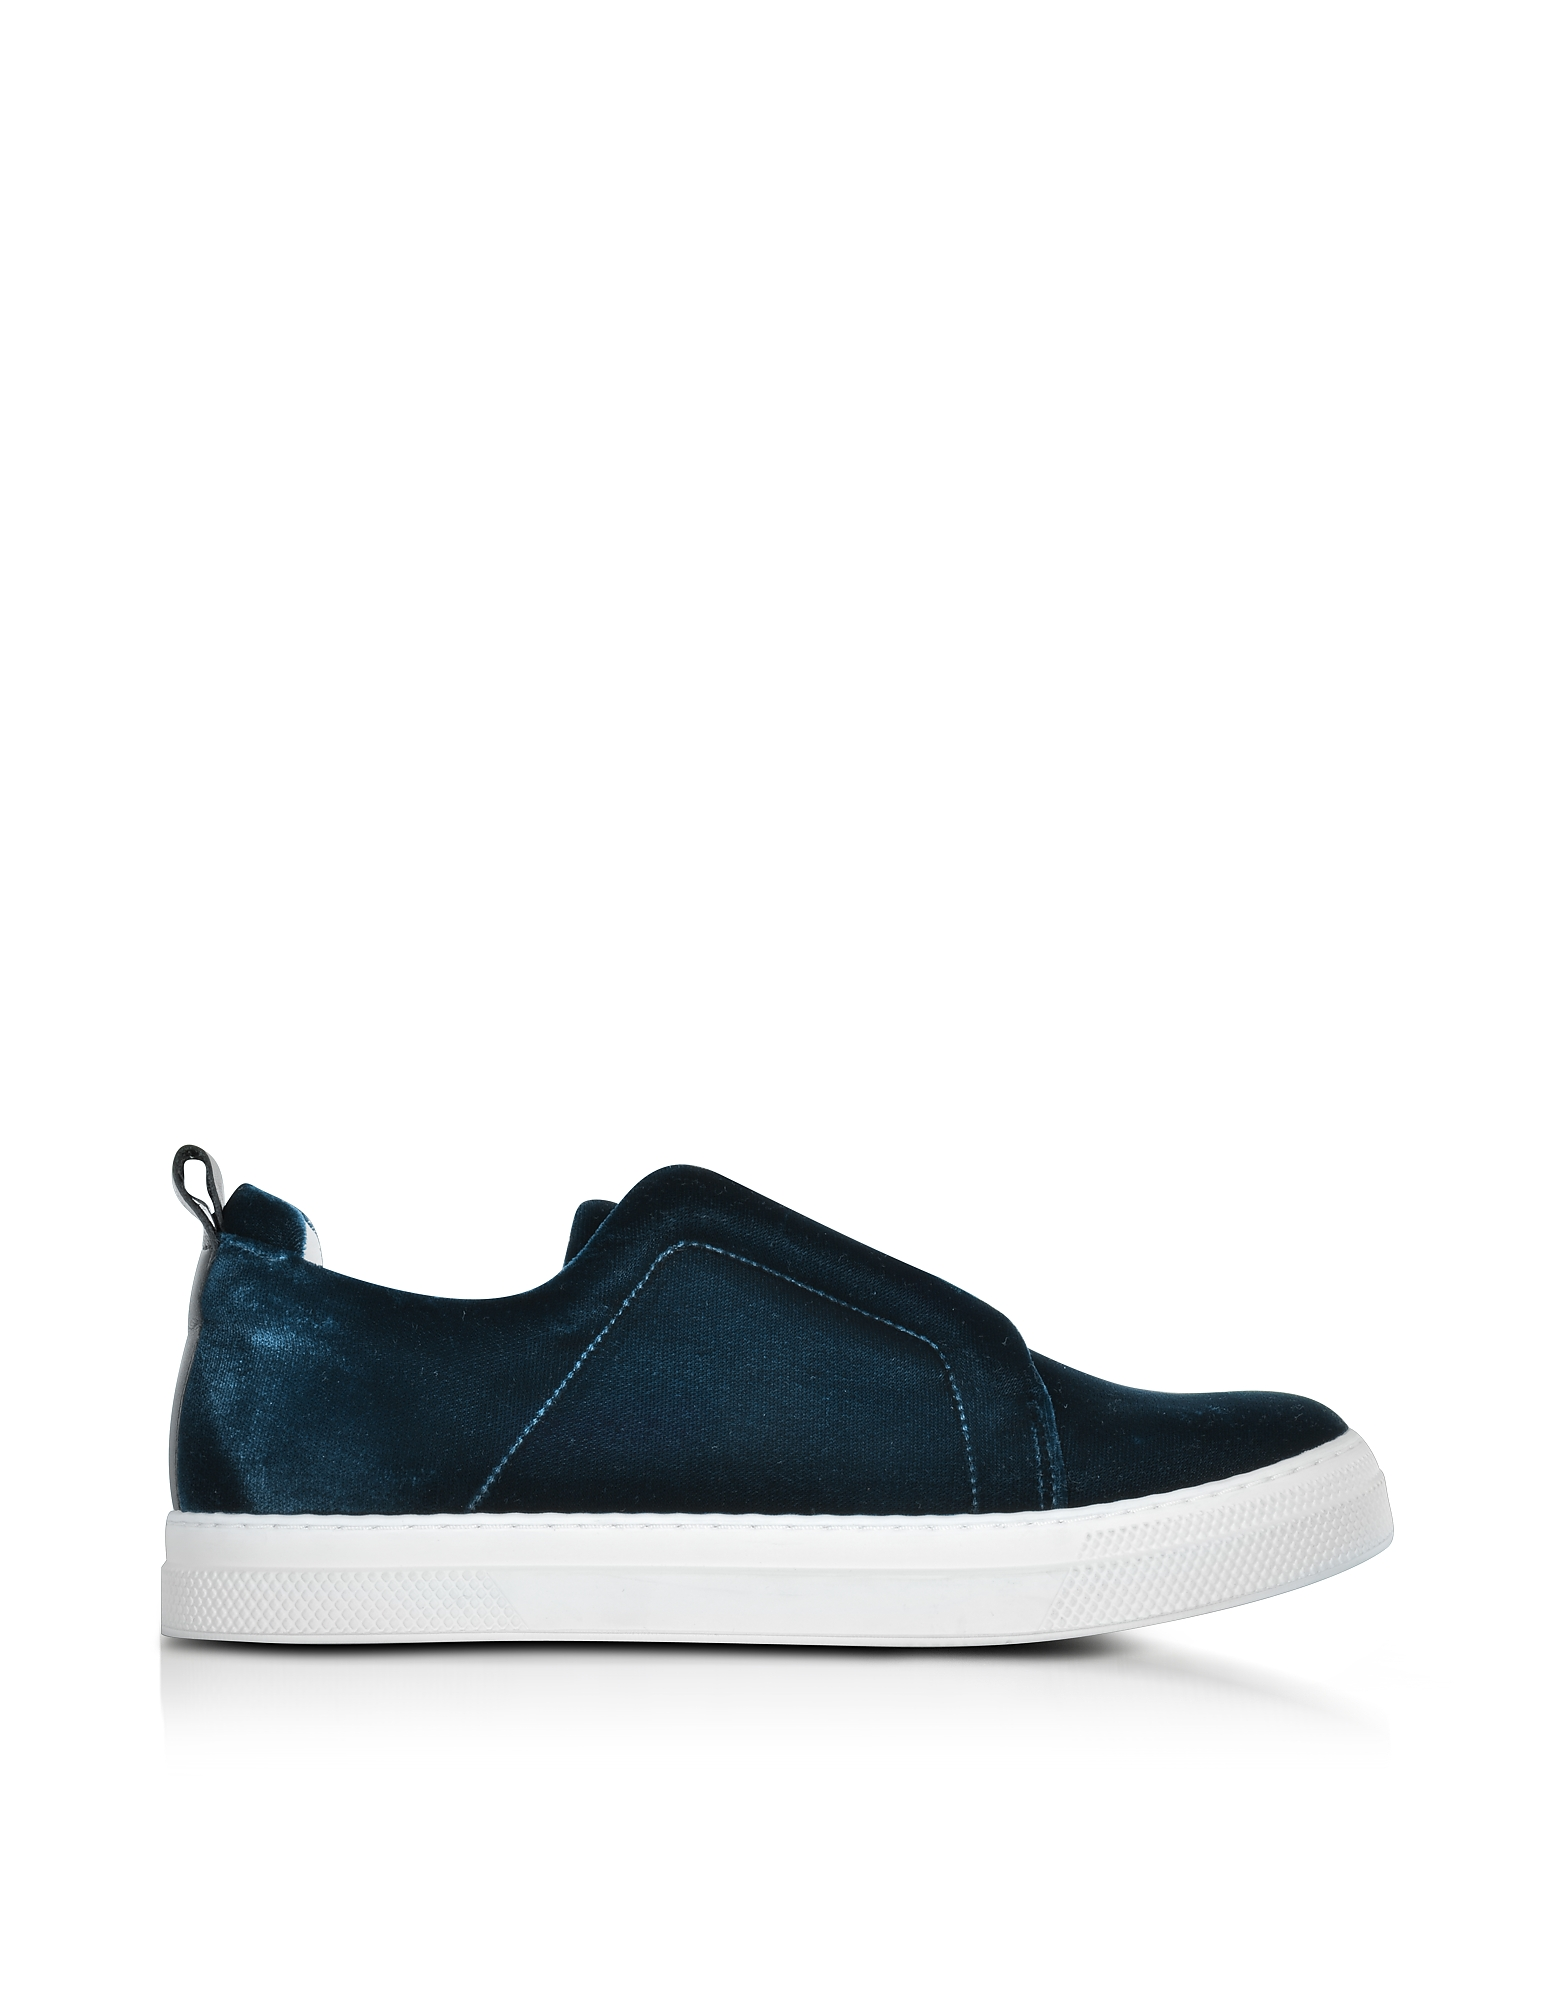 Pierre Hardy Shoes, Slider Petrol Velvet Sneaker